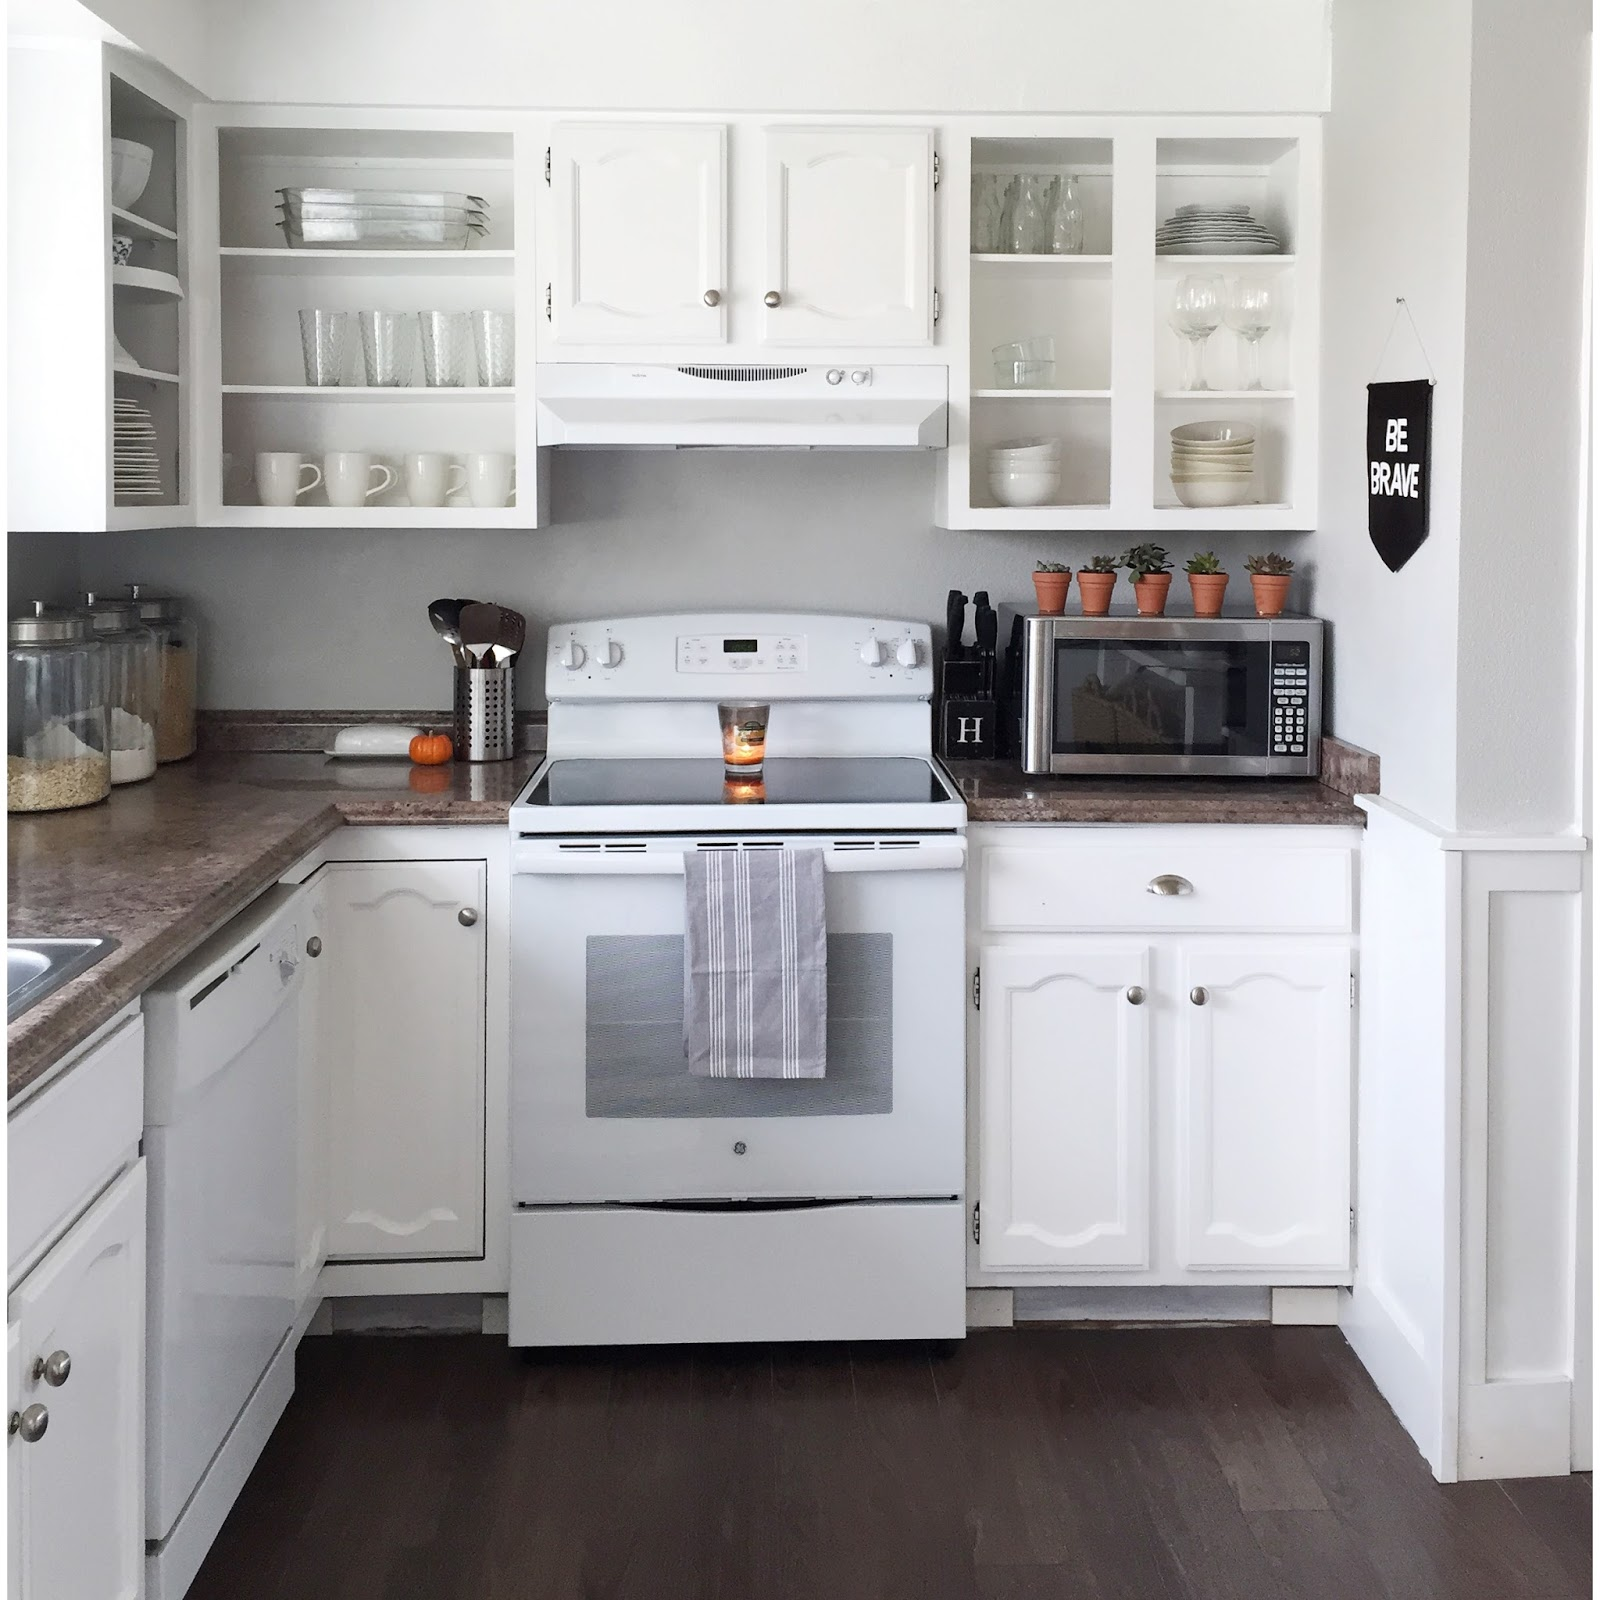 Keep Home Simple Our Split Level Fixer Upper